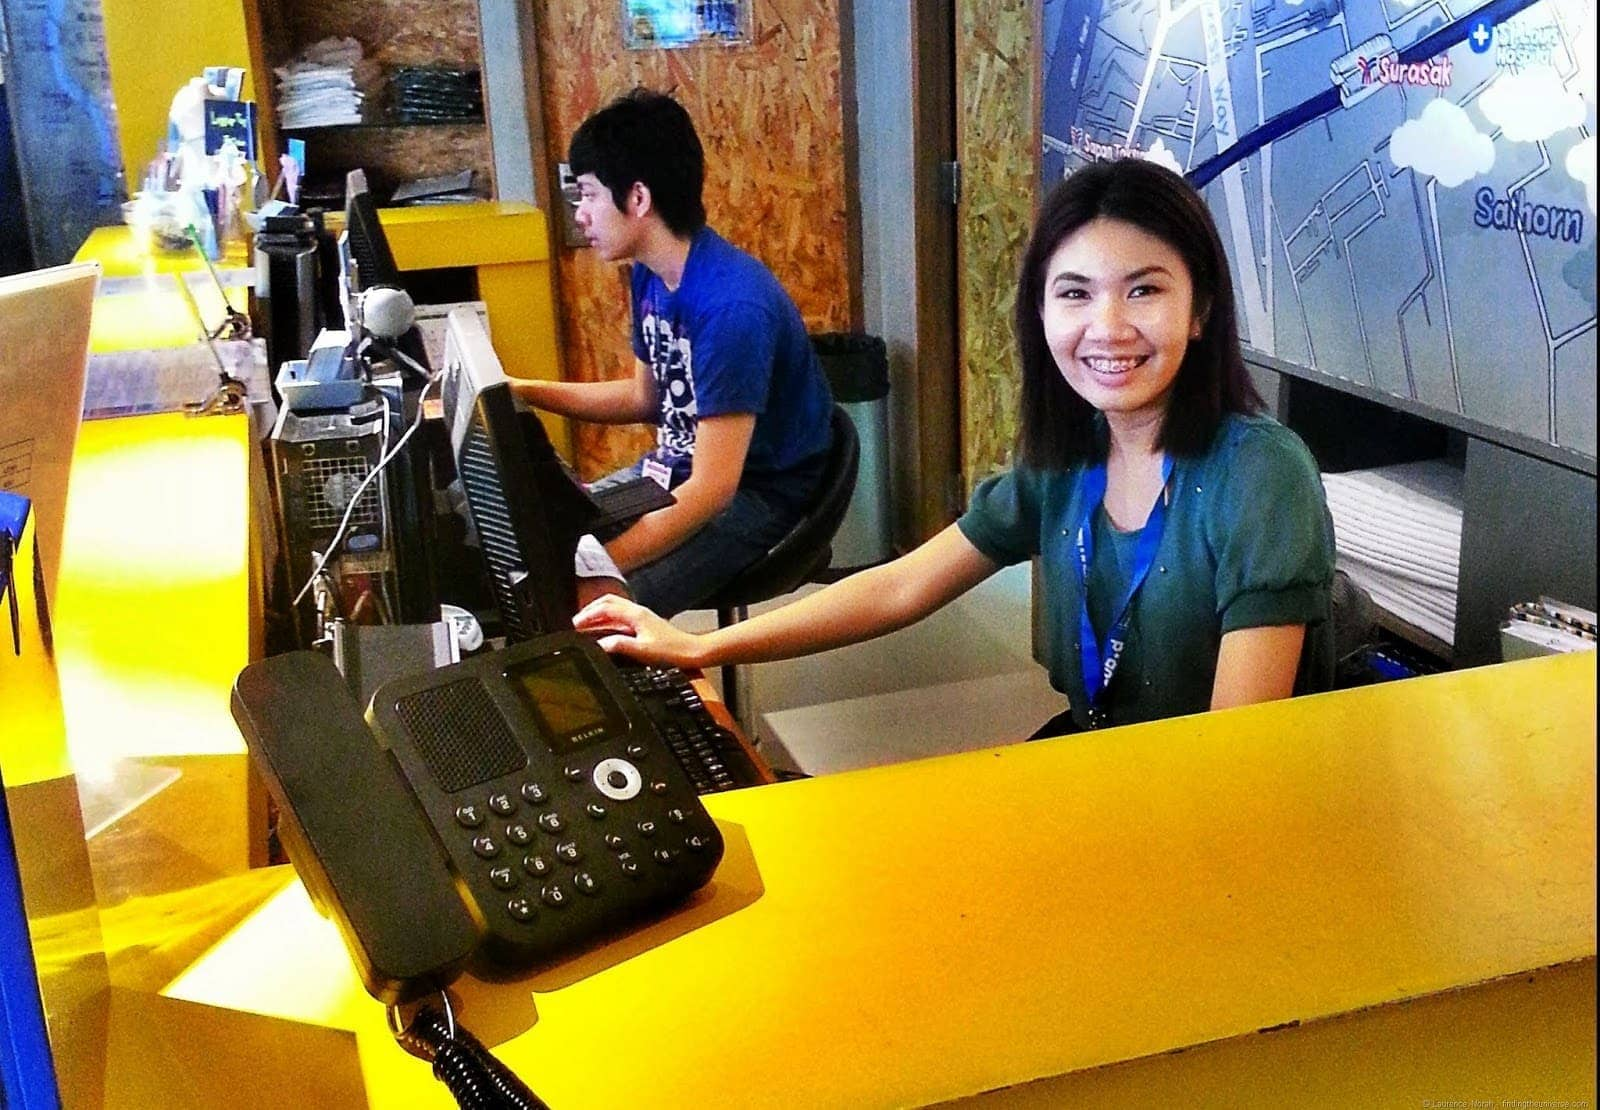 Friendly reception staff at Lub d Silom